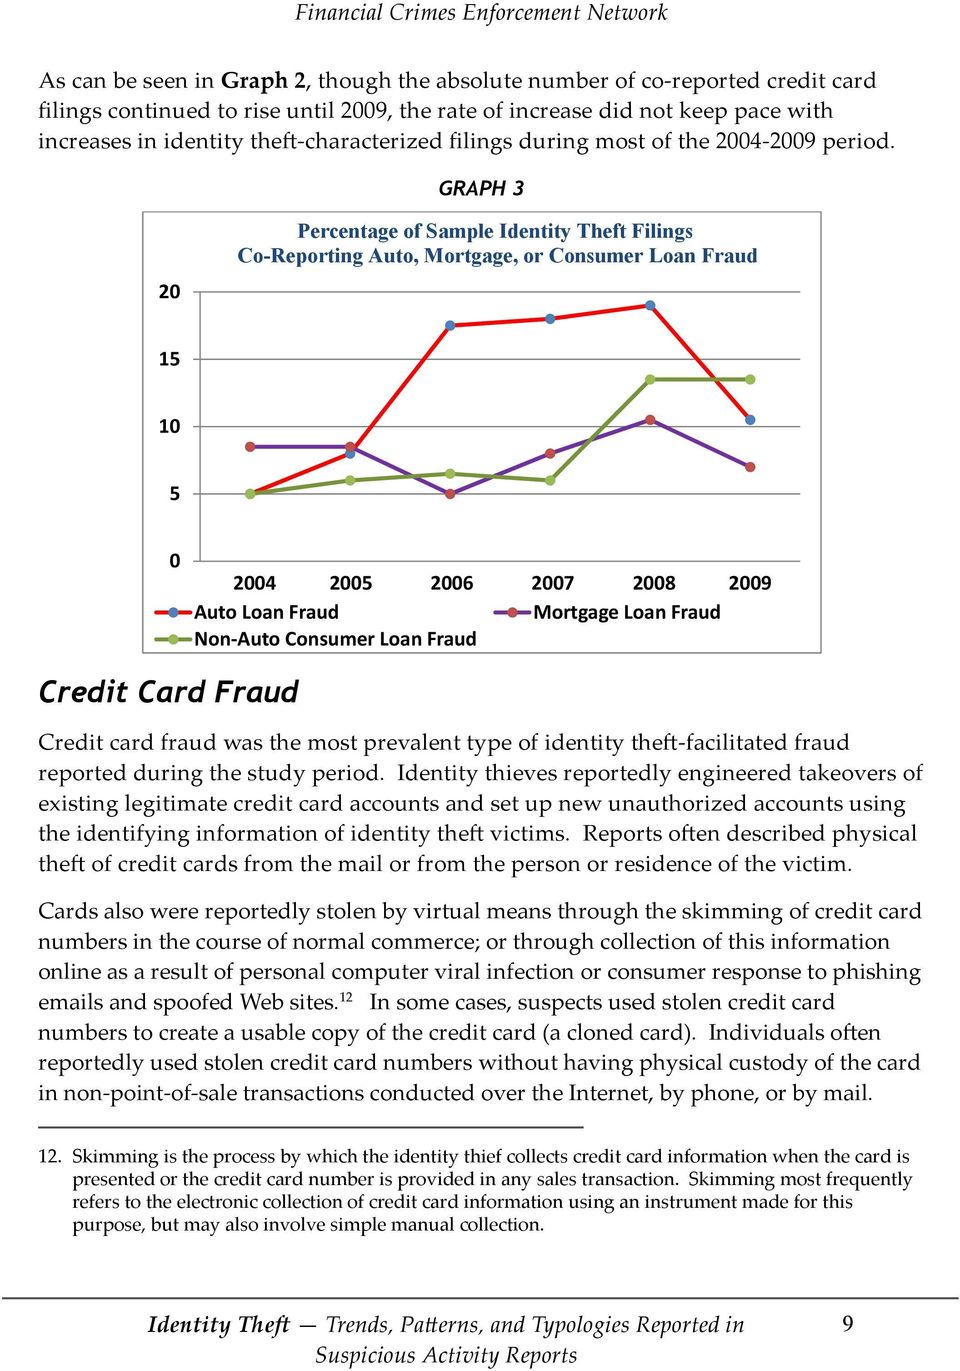 GRAPH 3 GRAPH 20 Percentage of Sample Identity Theft Filings Co-Reporting Auto, Mortgage, or Consumer Loan Fraud 15 10 5 0 2004 2005 2006 2007 2008 2009 Auto Loan Fraud Mortgage Loan Fraud Non Auto